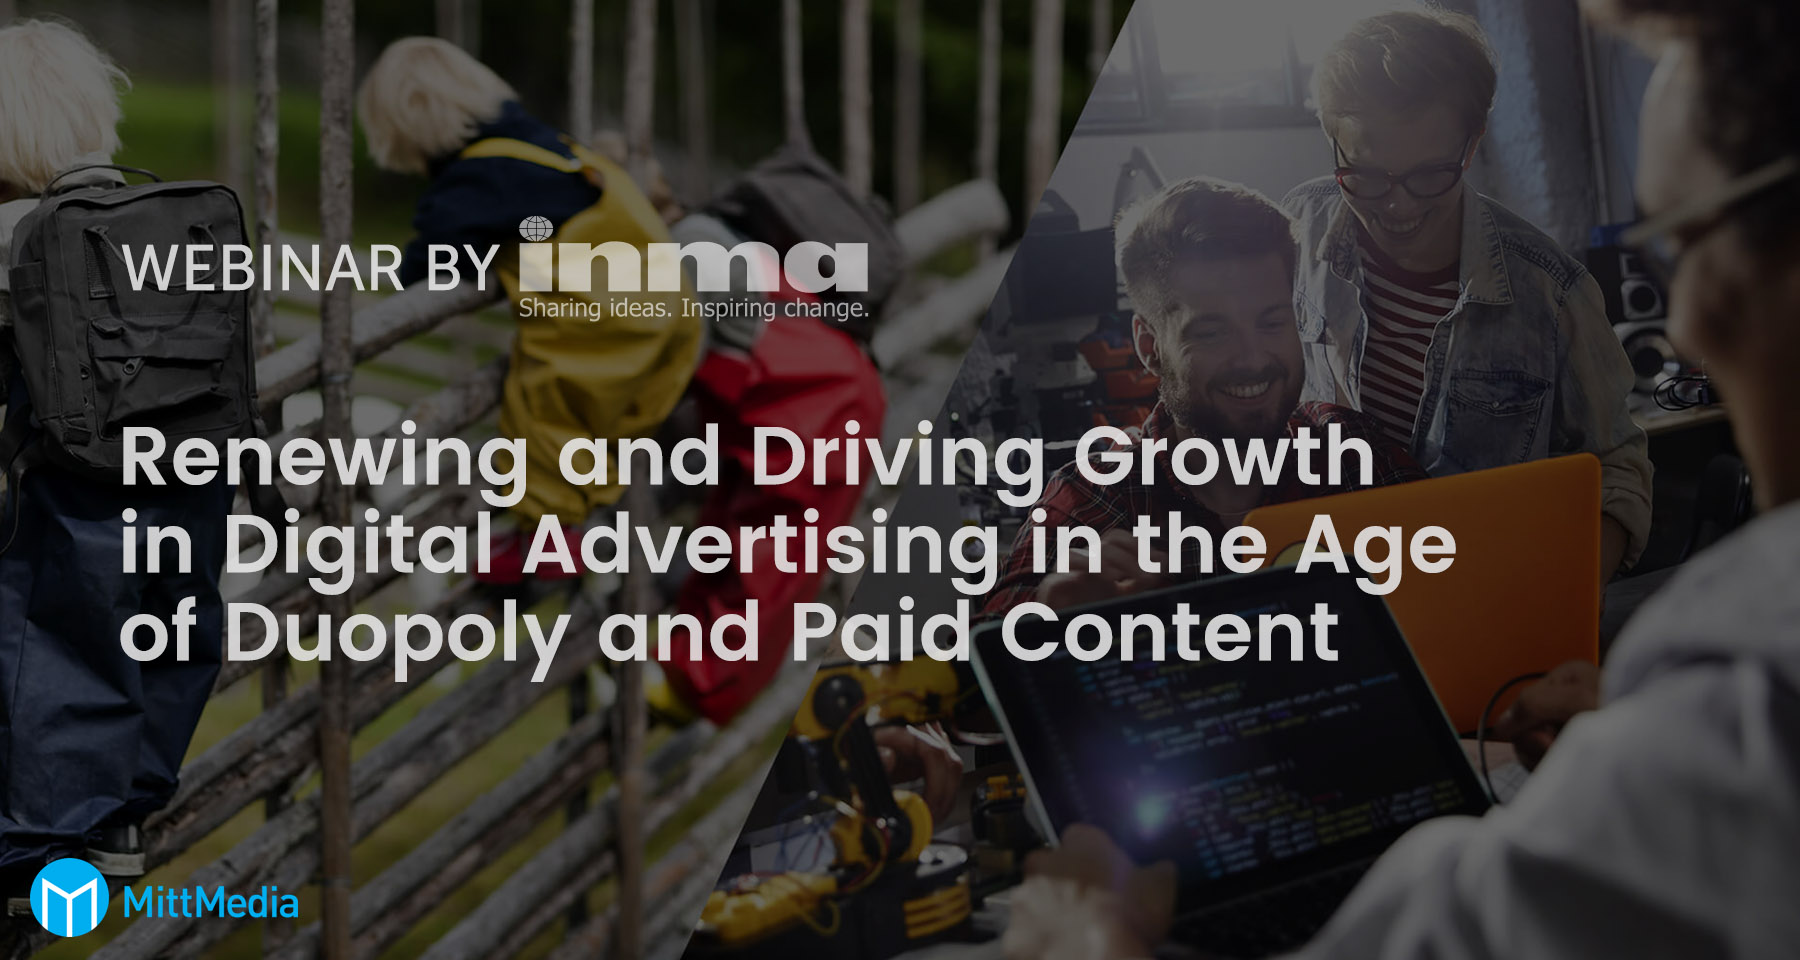 Upcoming INMA Webinar: Mittmedia drives digital advertising growth in age of duopoly, paid content